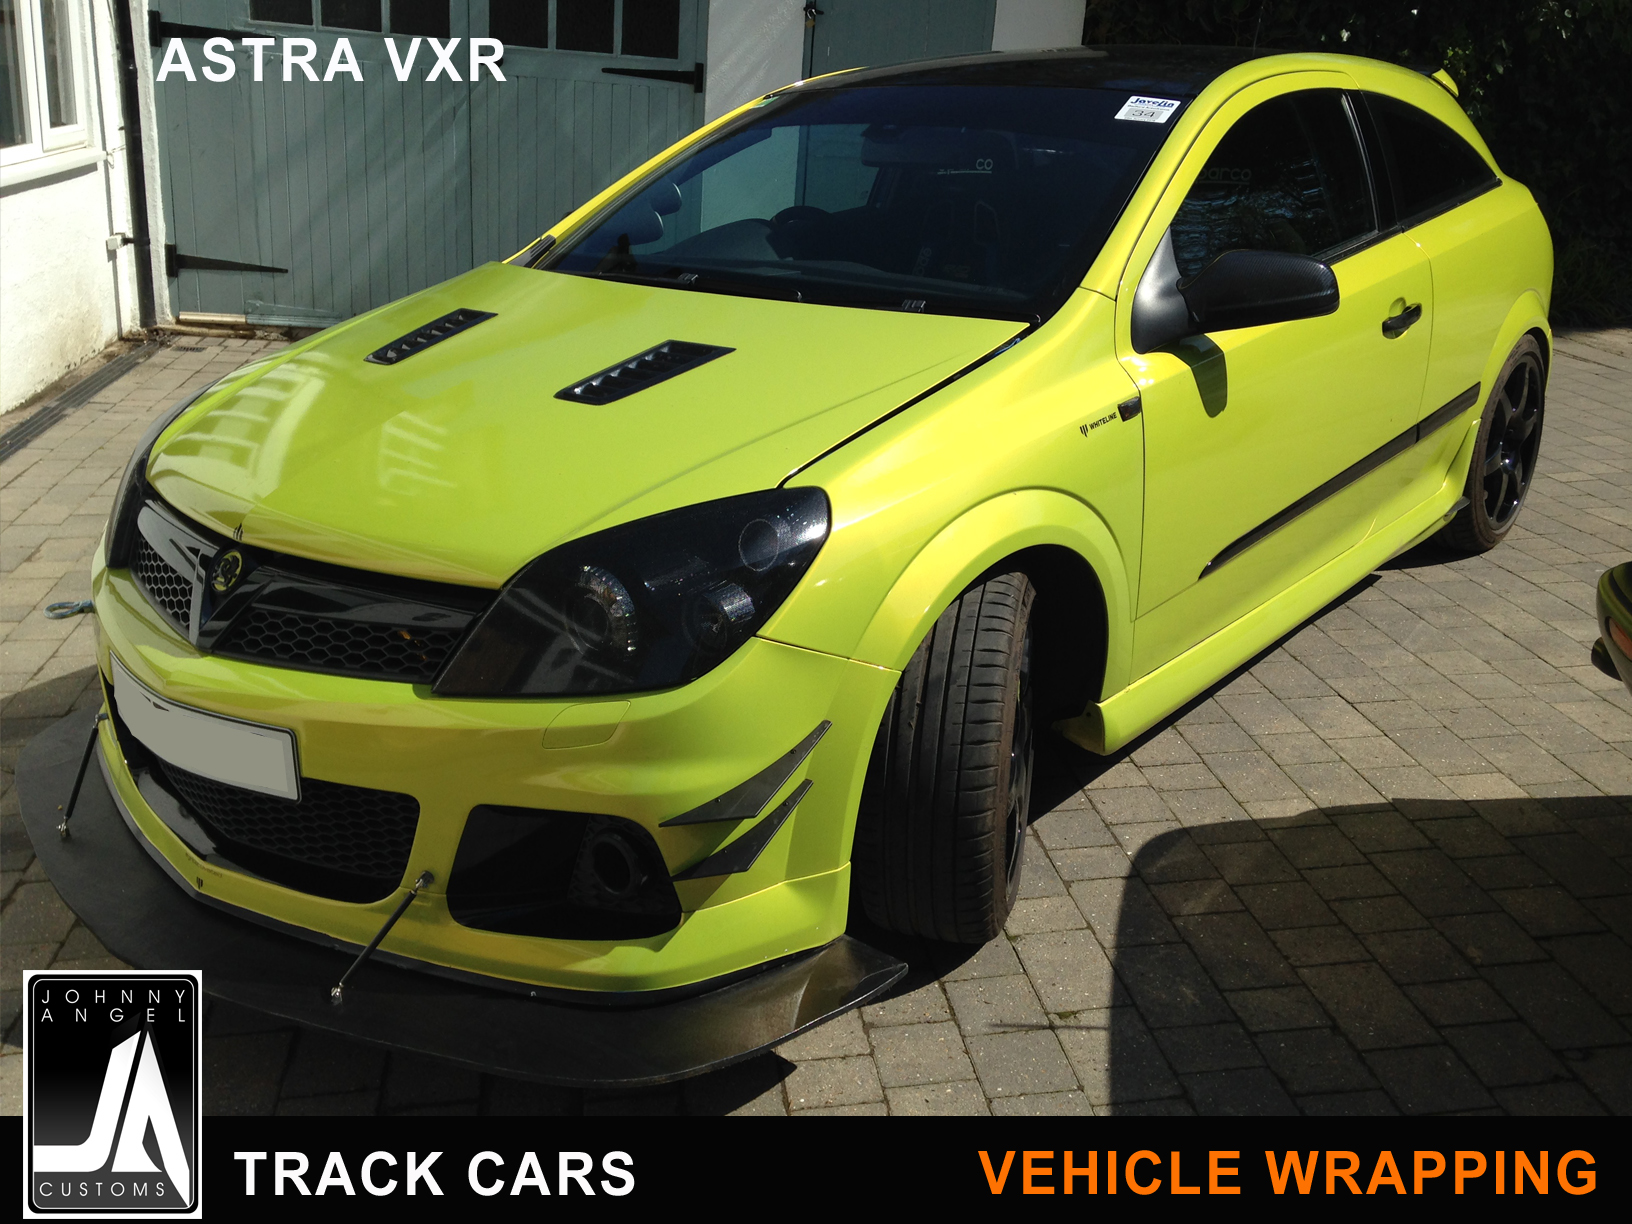 Johnny Angel Customs Track Cars Vehicle Wrapping Astra VXR p2